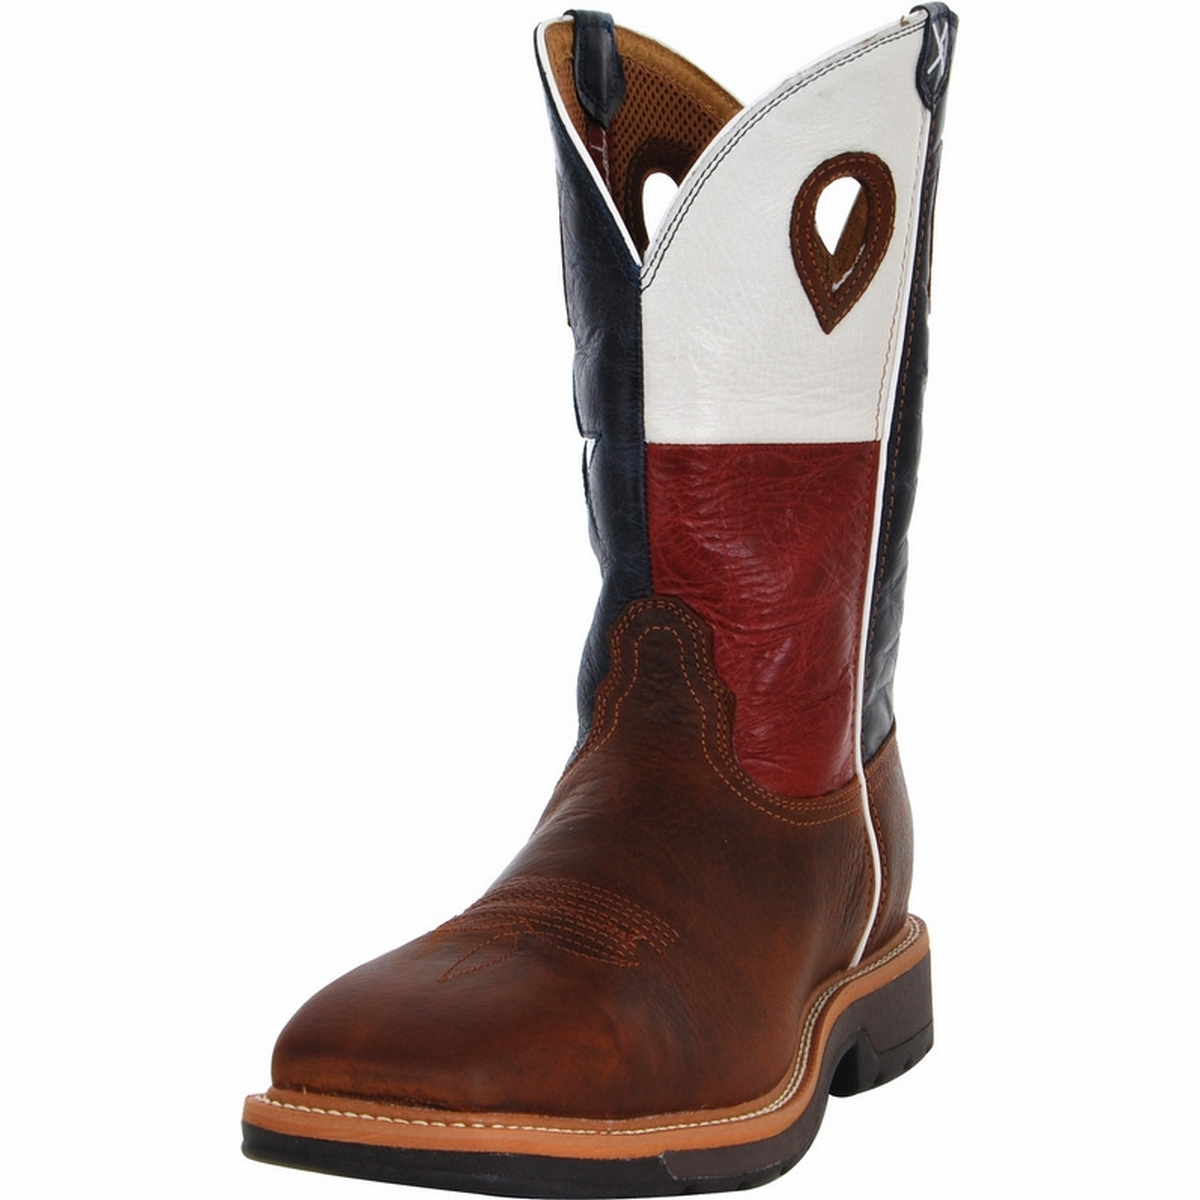 10997e25095 Twisted X MLCS007 Men's Lite Cowboy Steel Toe Work Boot With Texas Flag